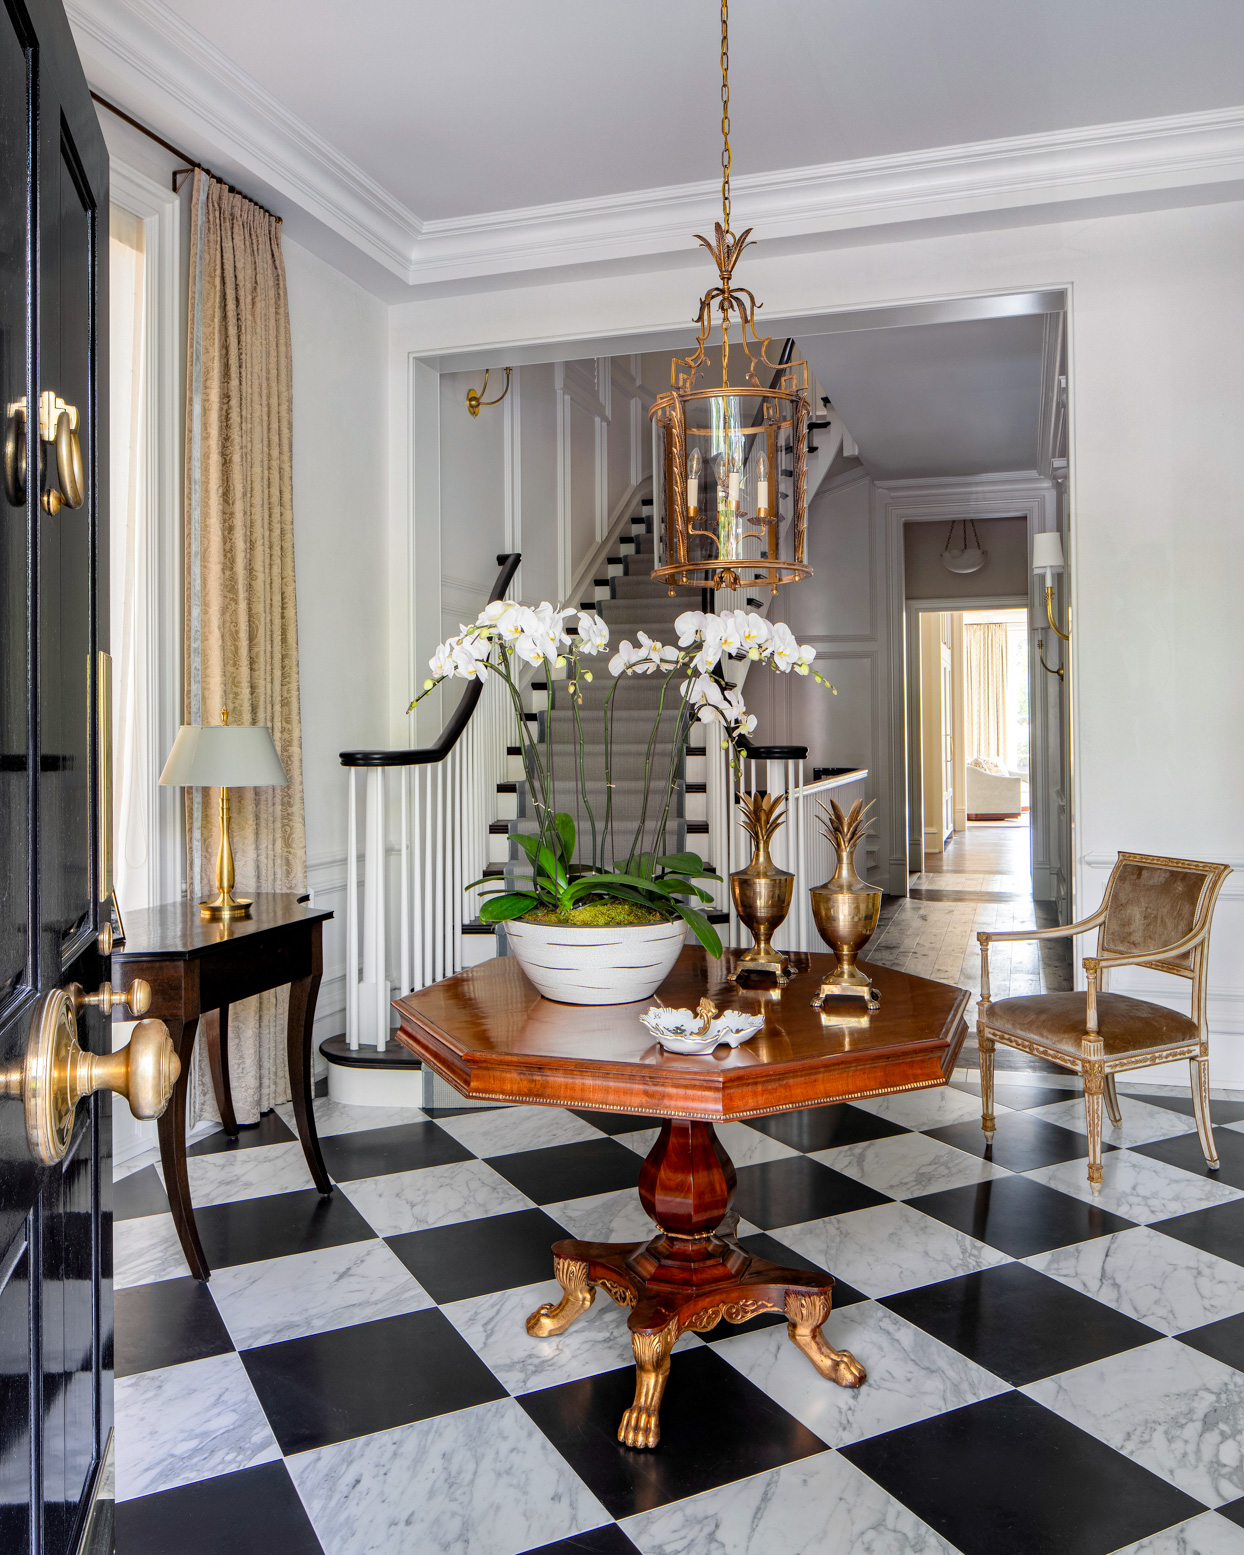 entry area with gold accents and black and white tiled floor